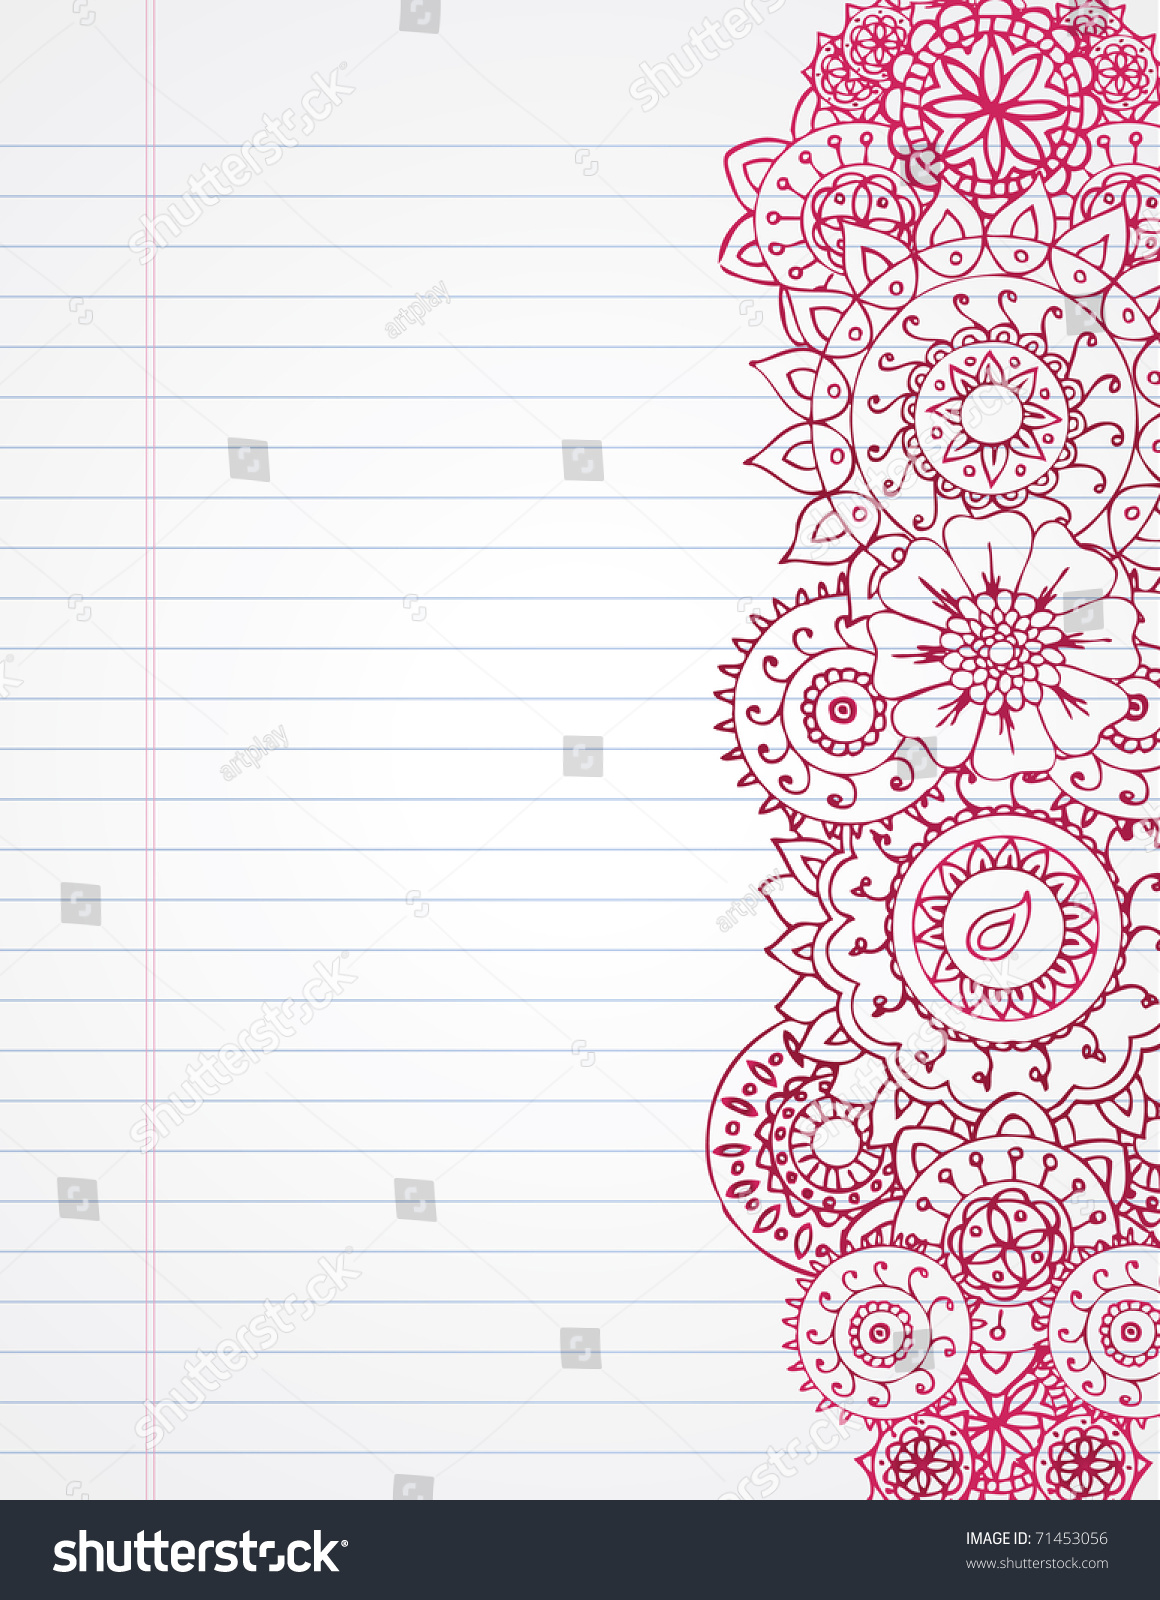 royalty-free henna border on lined paper. #71453056 stock photo